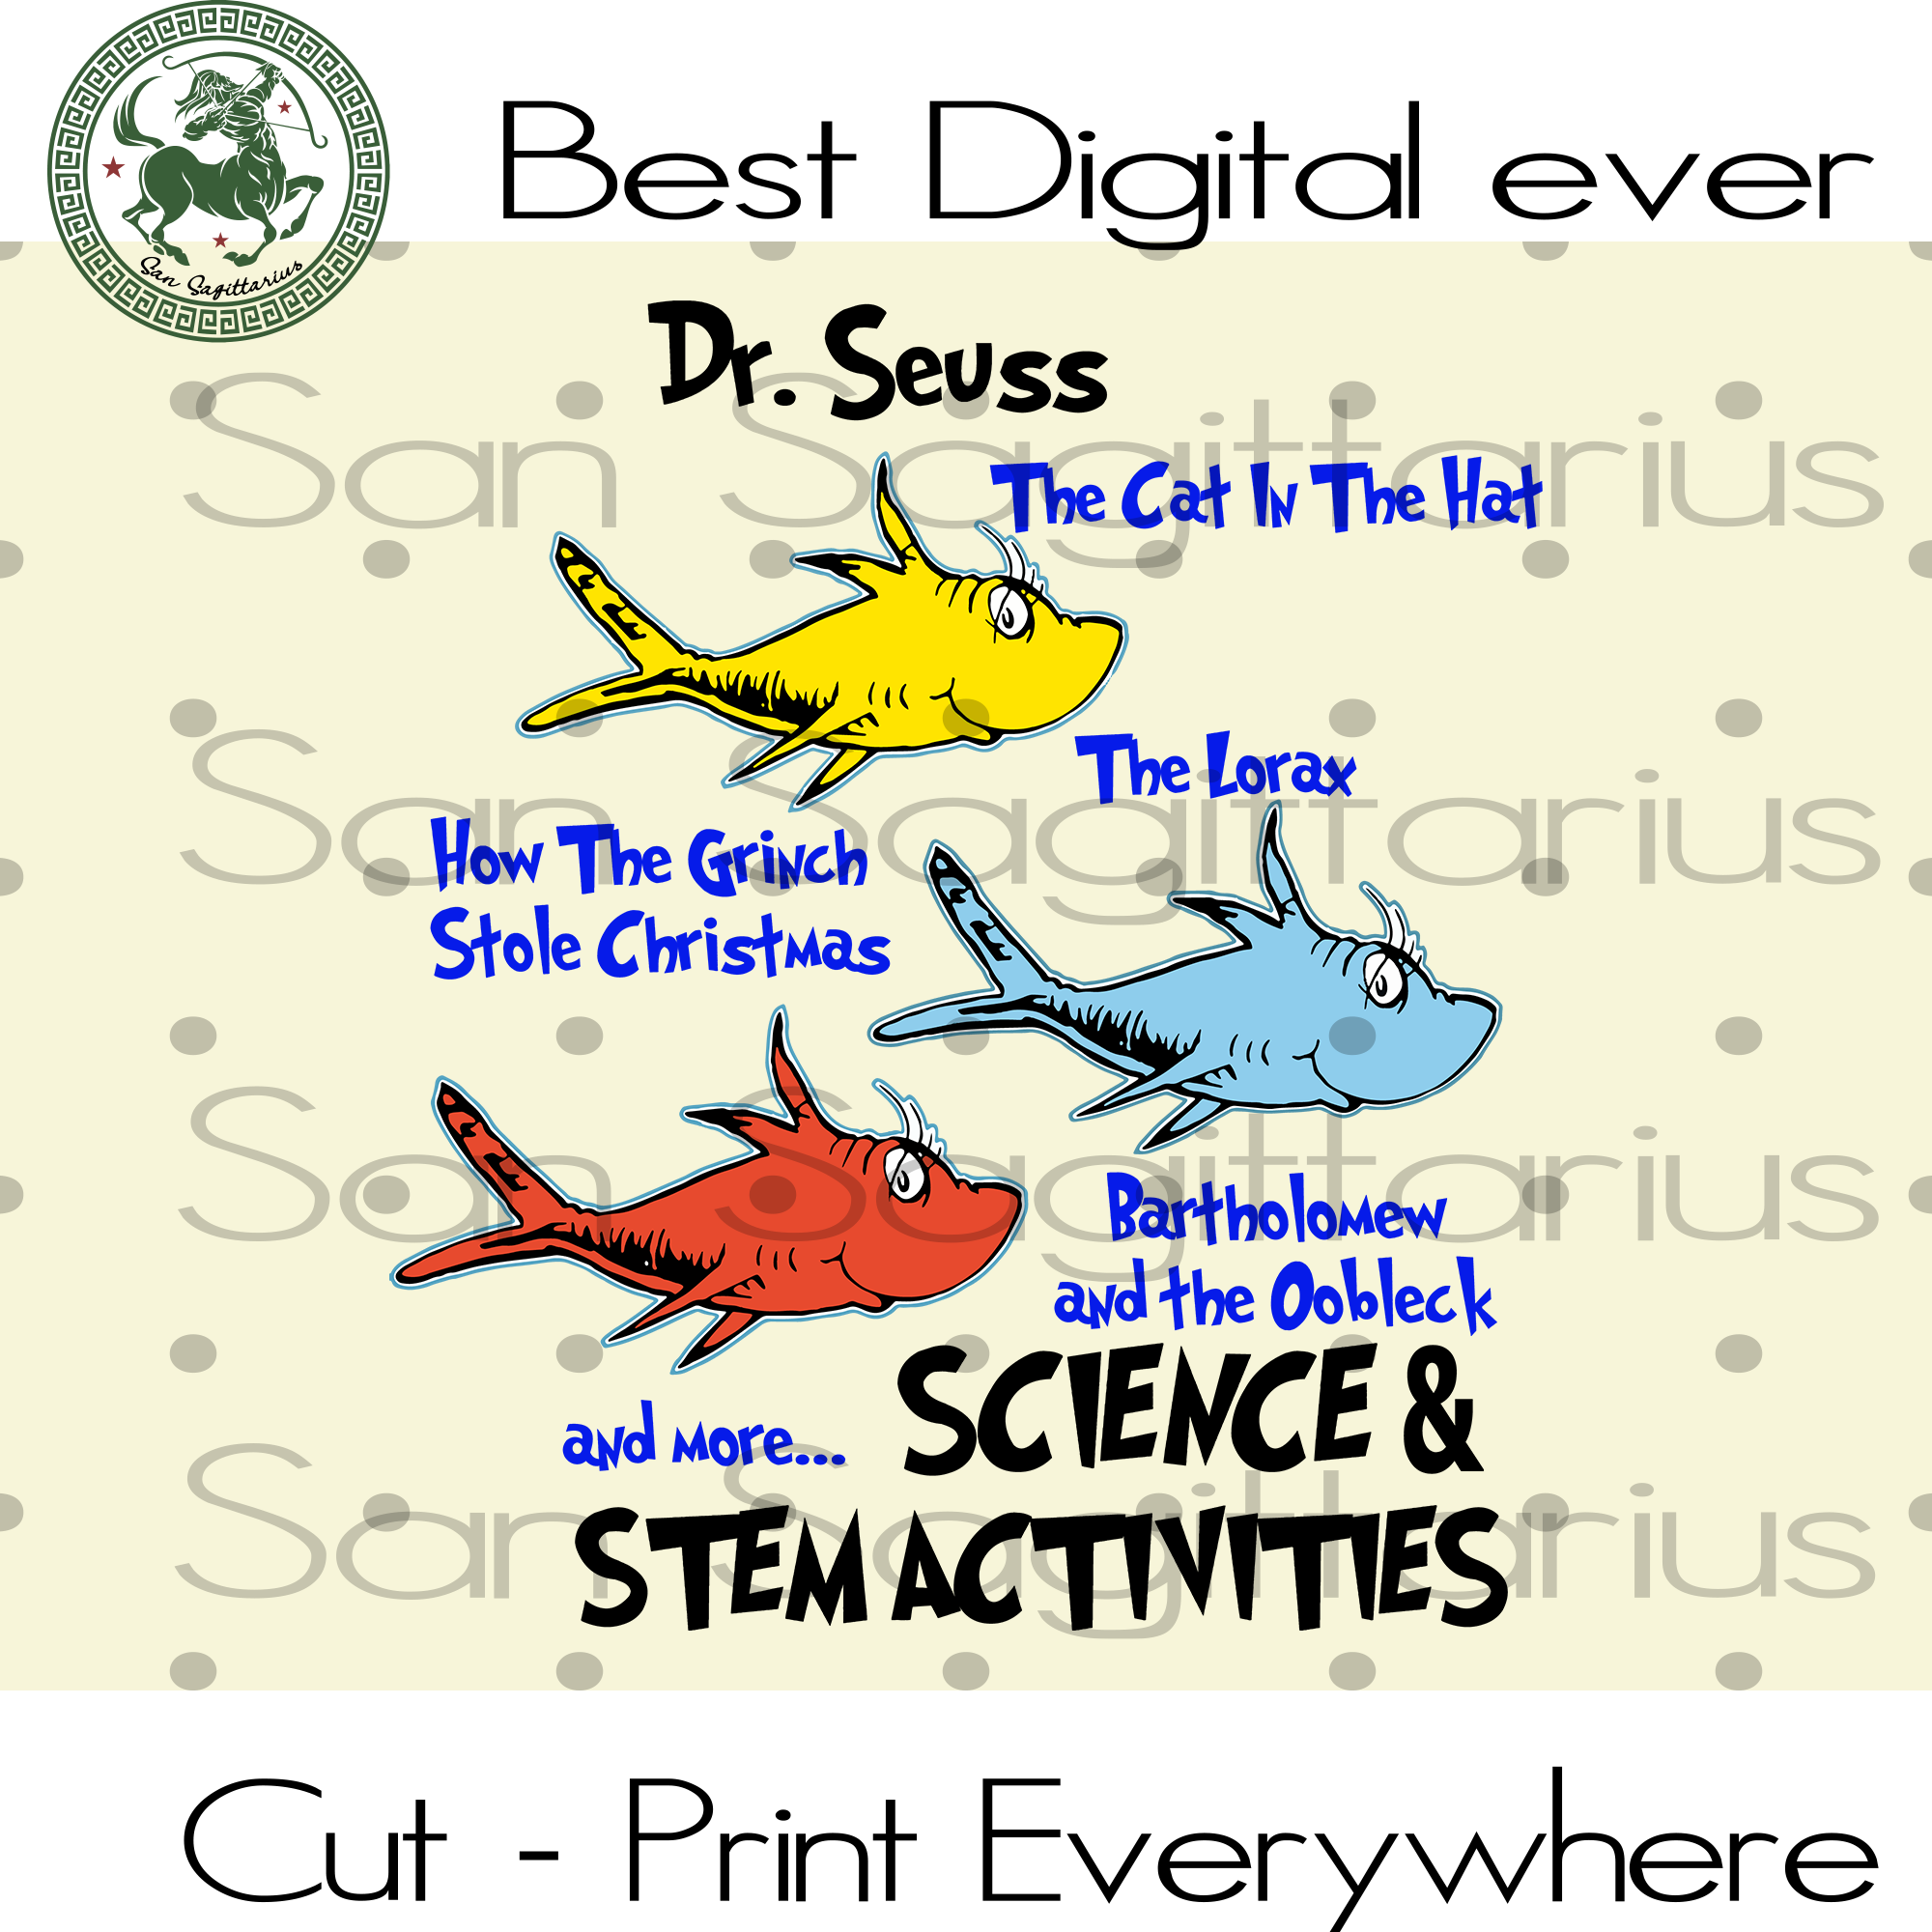 One Fish Two Fish, Yellow Fish Red Fish Blue Fish, Dr Seuss Svg, Dr Seuss Gift, Dr Seuss Birthday Party Svg Files For Cricut Silhouette Instant Download | San Sagittarius